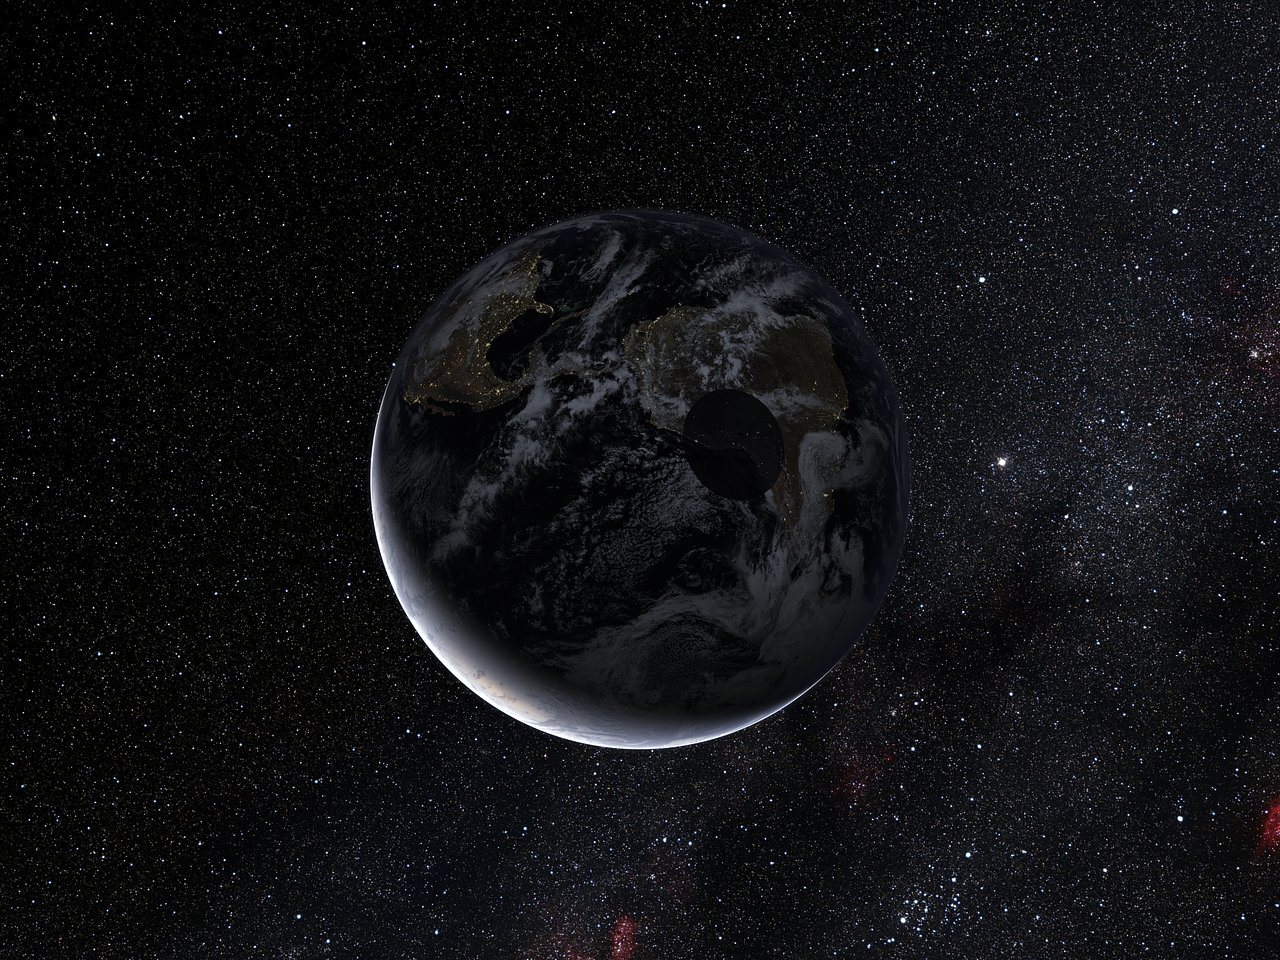 Path of the shadow of the dwarf planet Eris during the occultation of November 2010 (artist's impression)